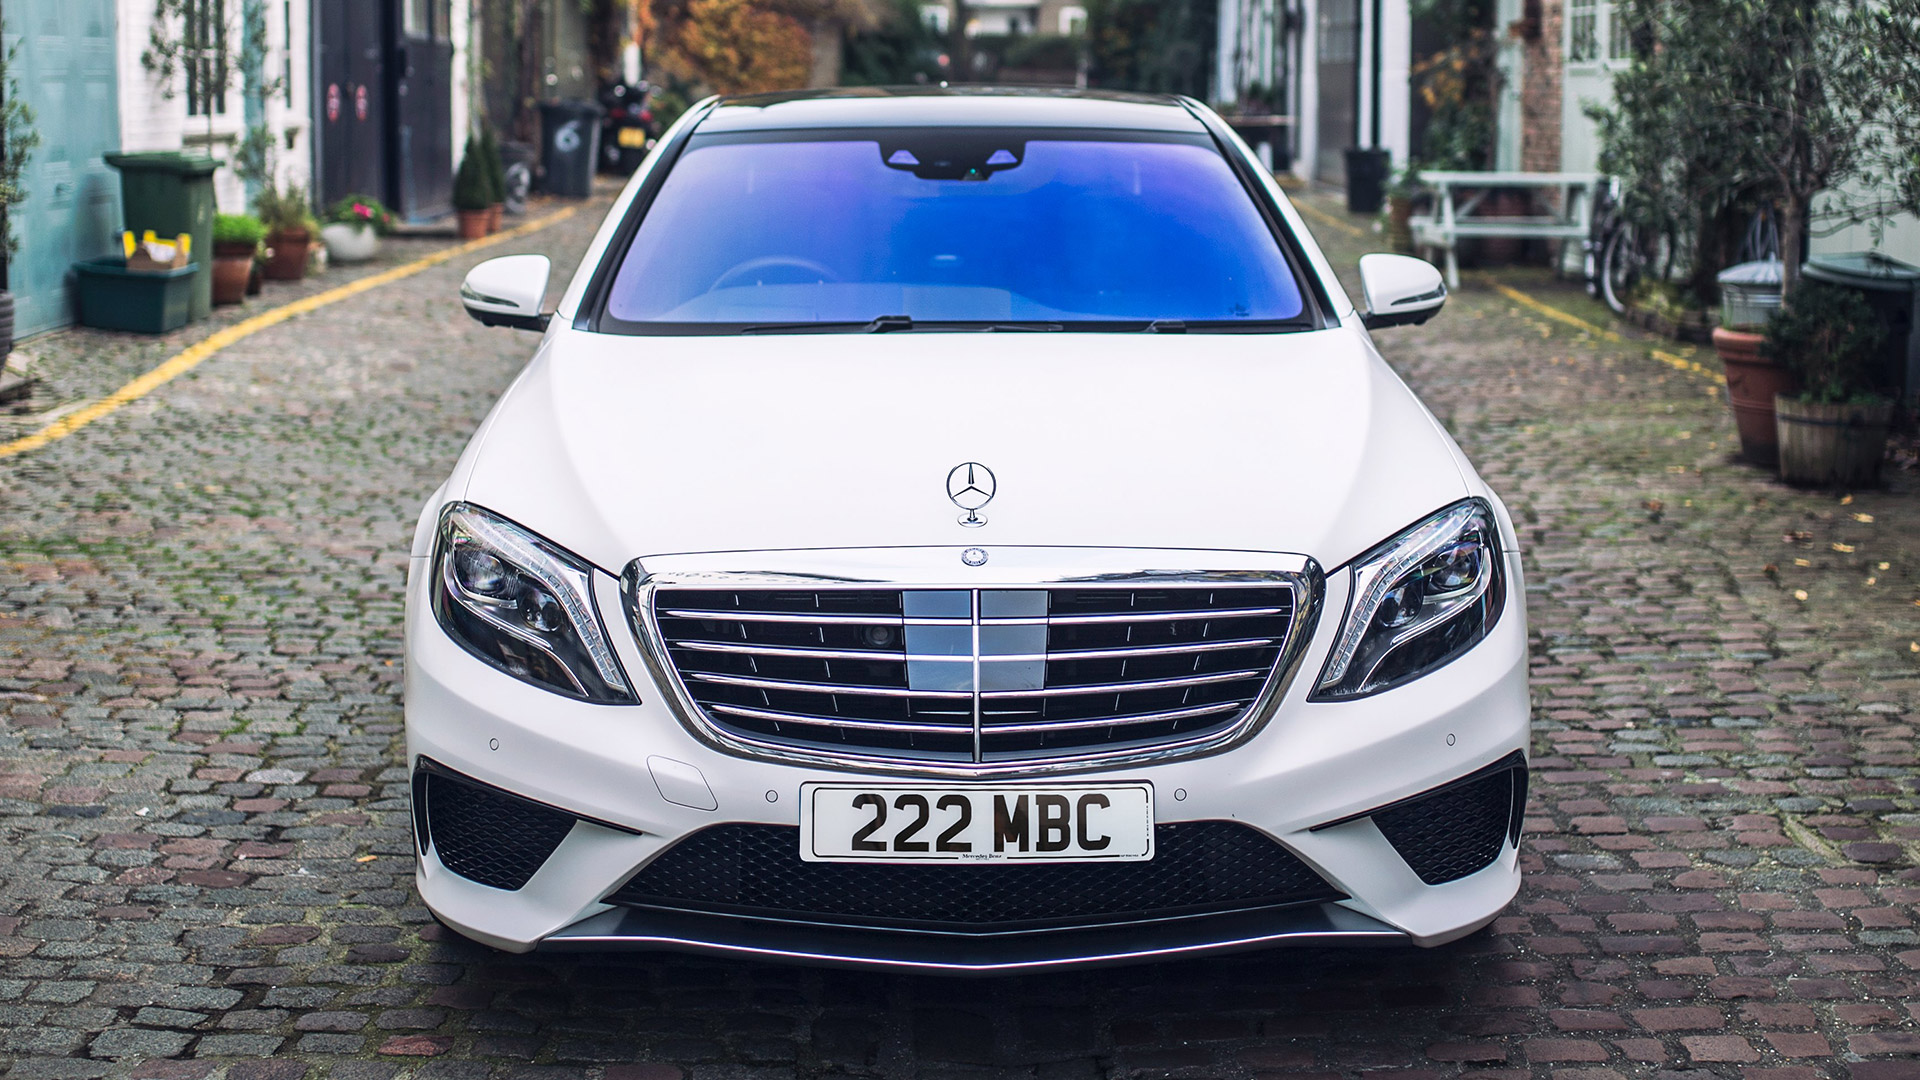 Mercedes benz S63 AMG coupe 2018 Front view